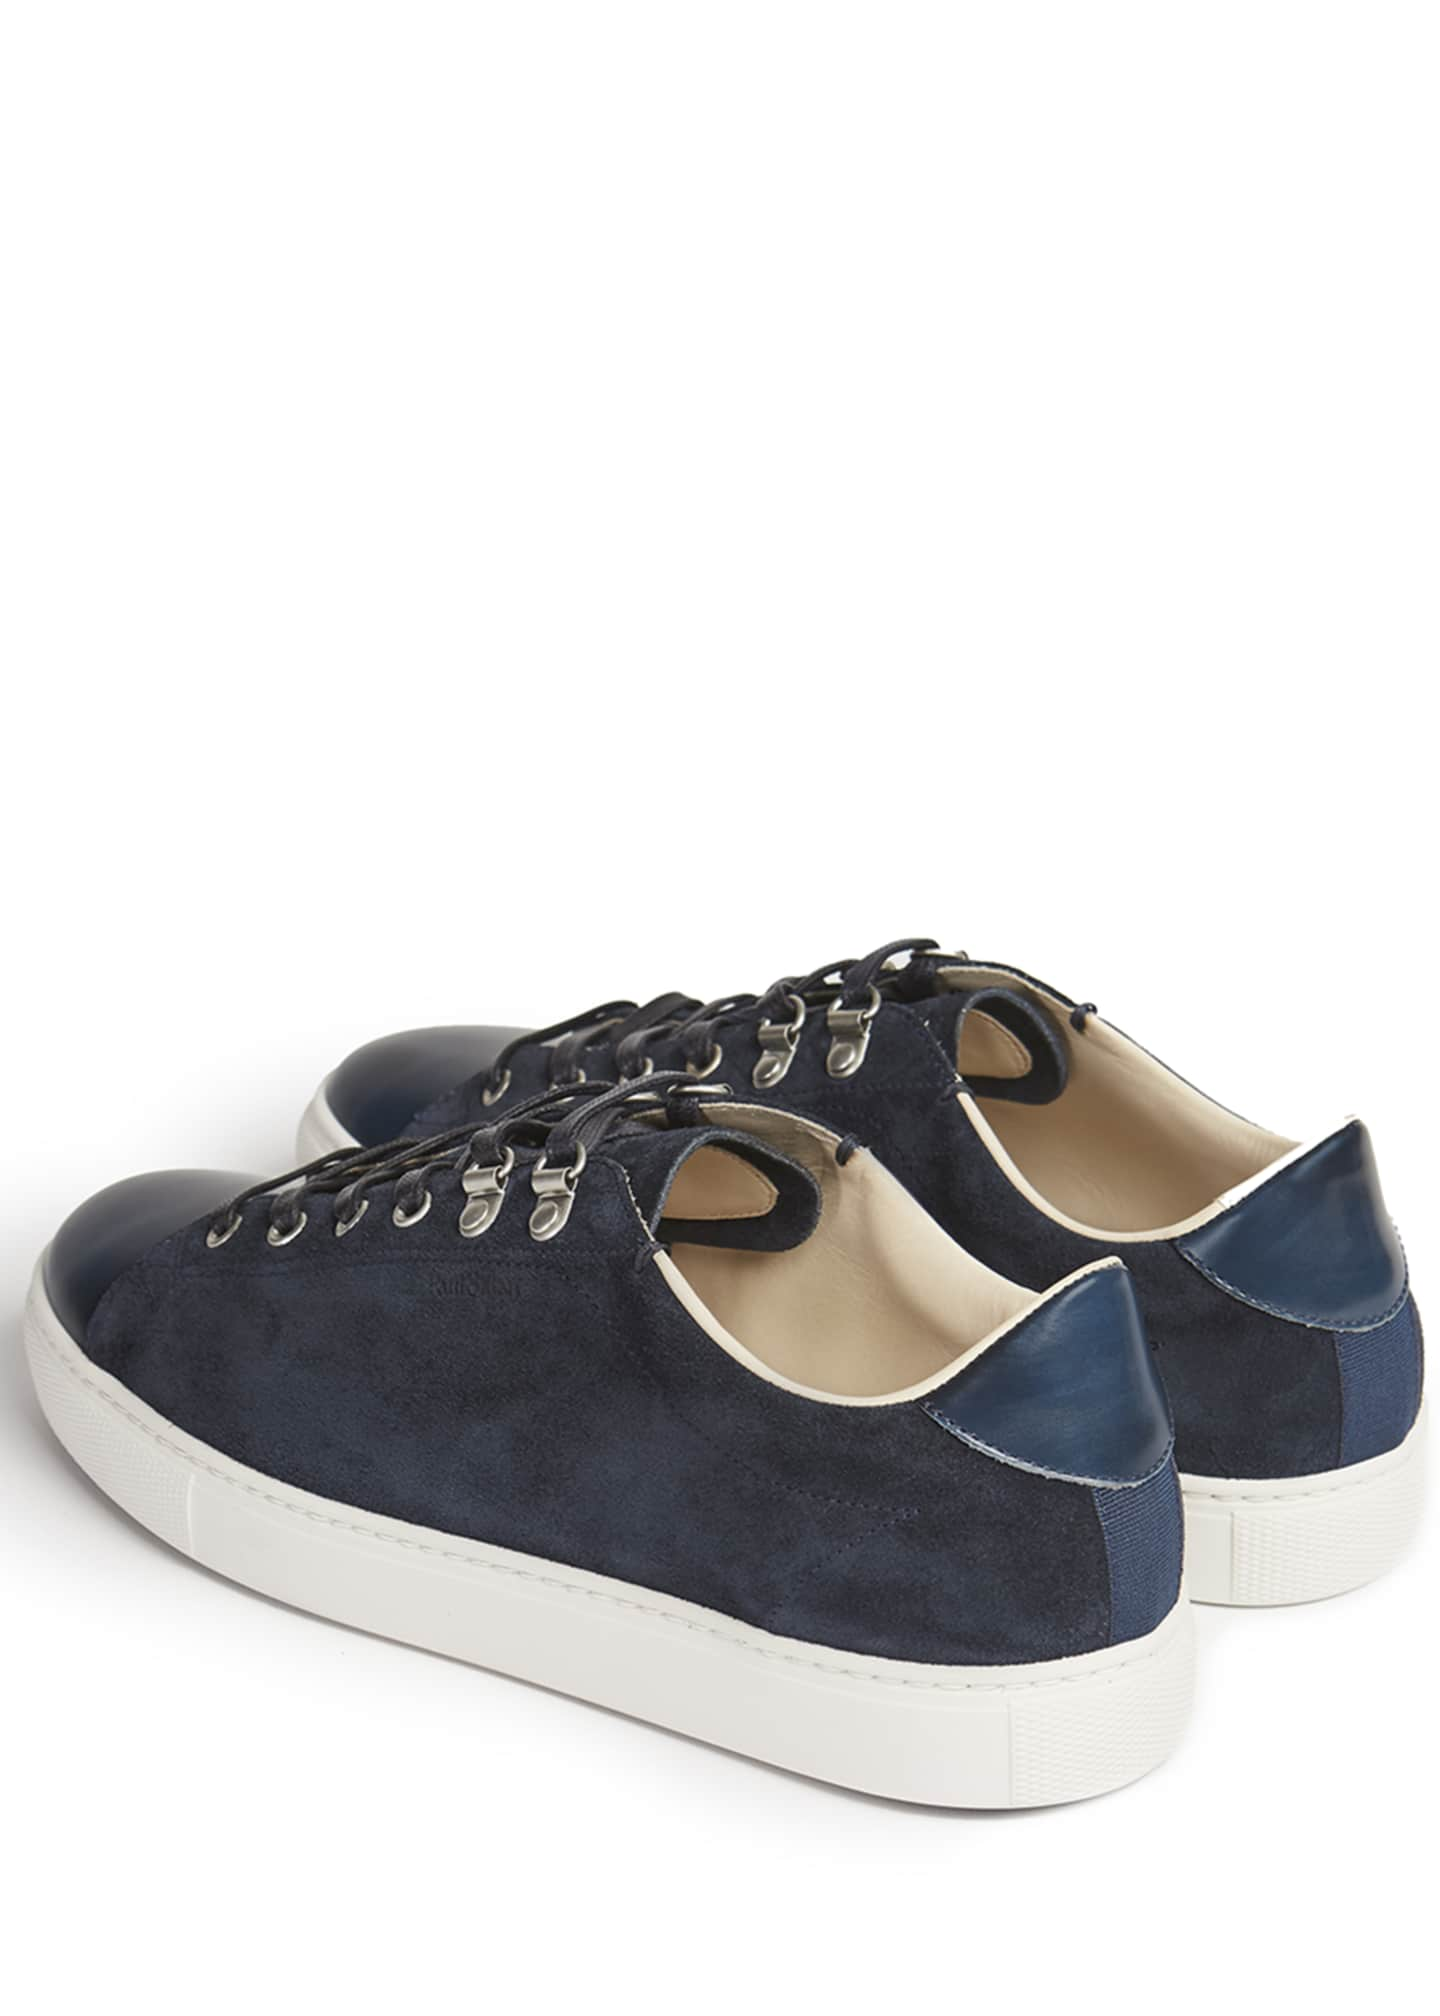 Image 5 of 5: Men's Game Suede Low-Top Sneakers